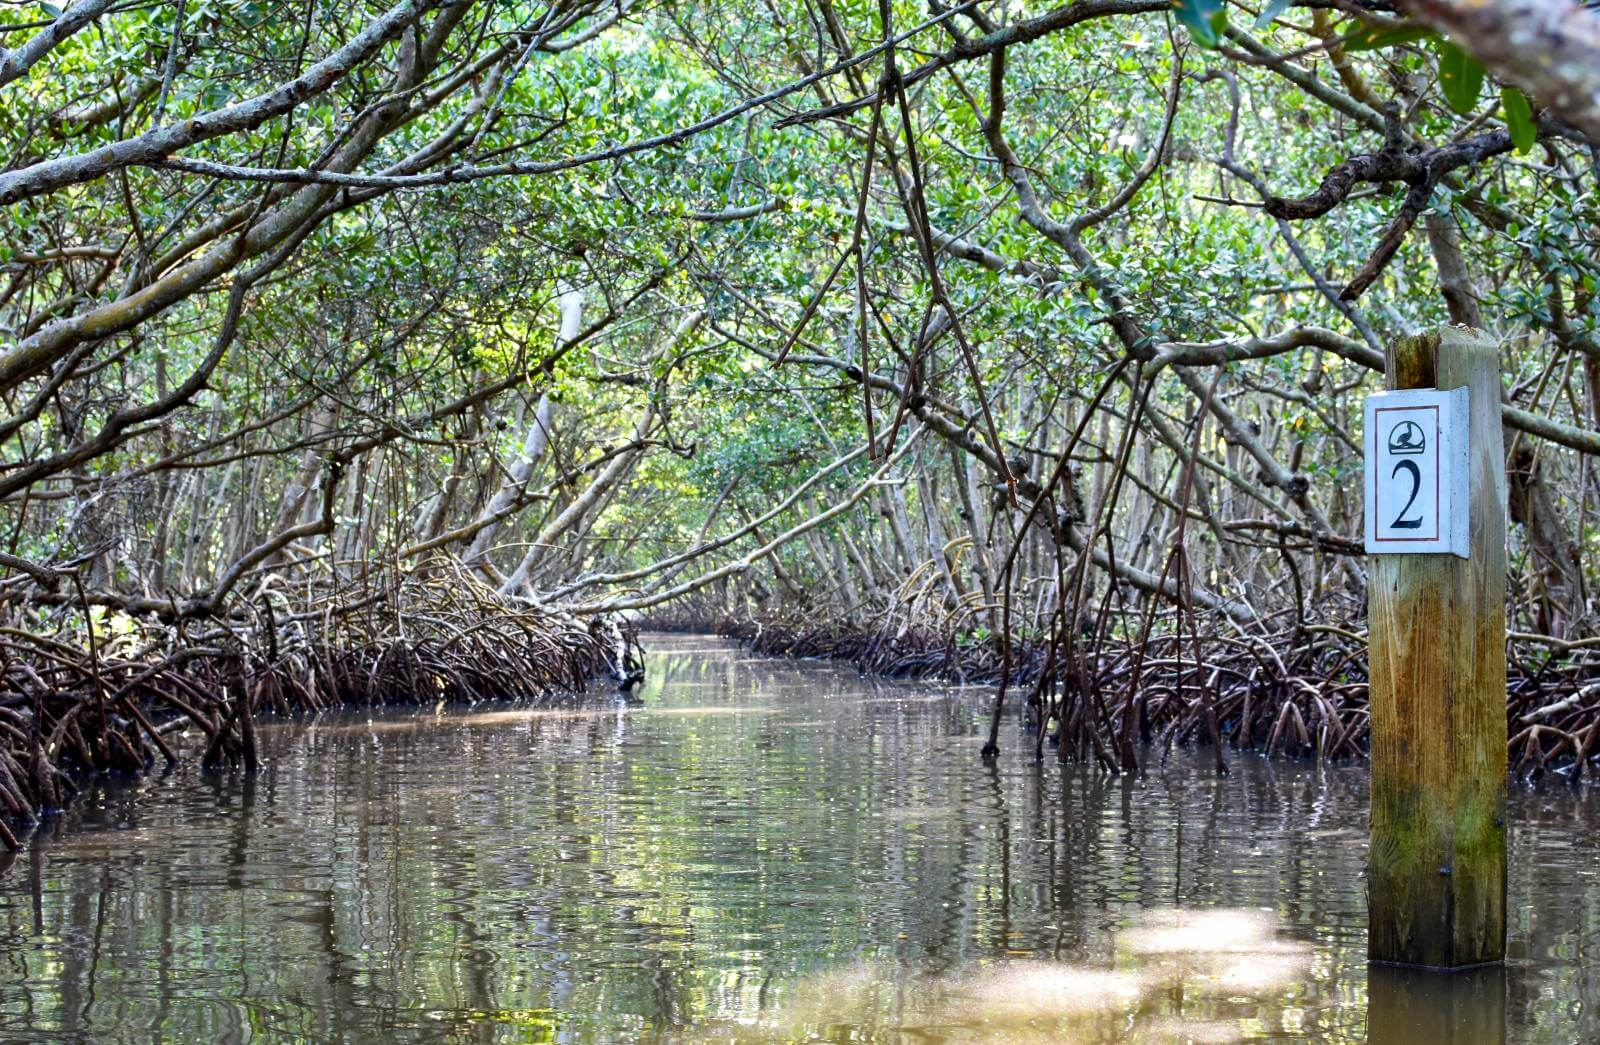 Take a serene guided eco tour of the mangrove tunnels at Ted Sperling Park at South Lido Key in Sarasota, Florida. A favorite tour for all ages—great for the beginner or experienced paddler. Photo credit Andrew Fabian. Must Do Visitor Guides | MustDo.com